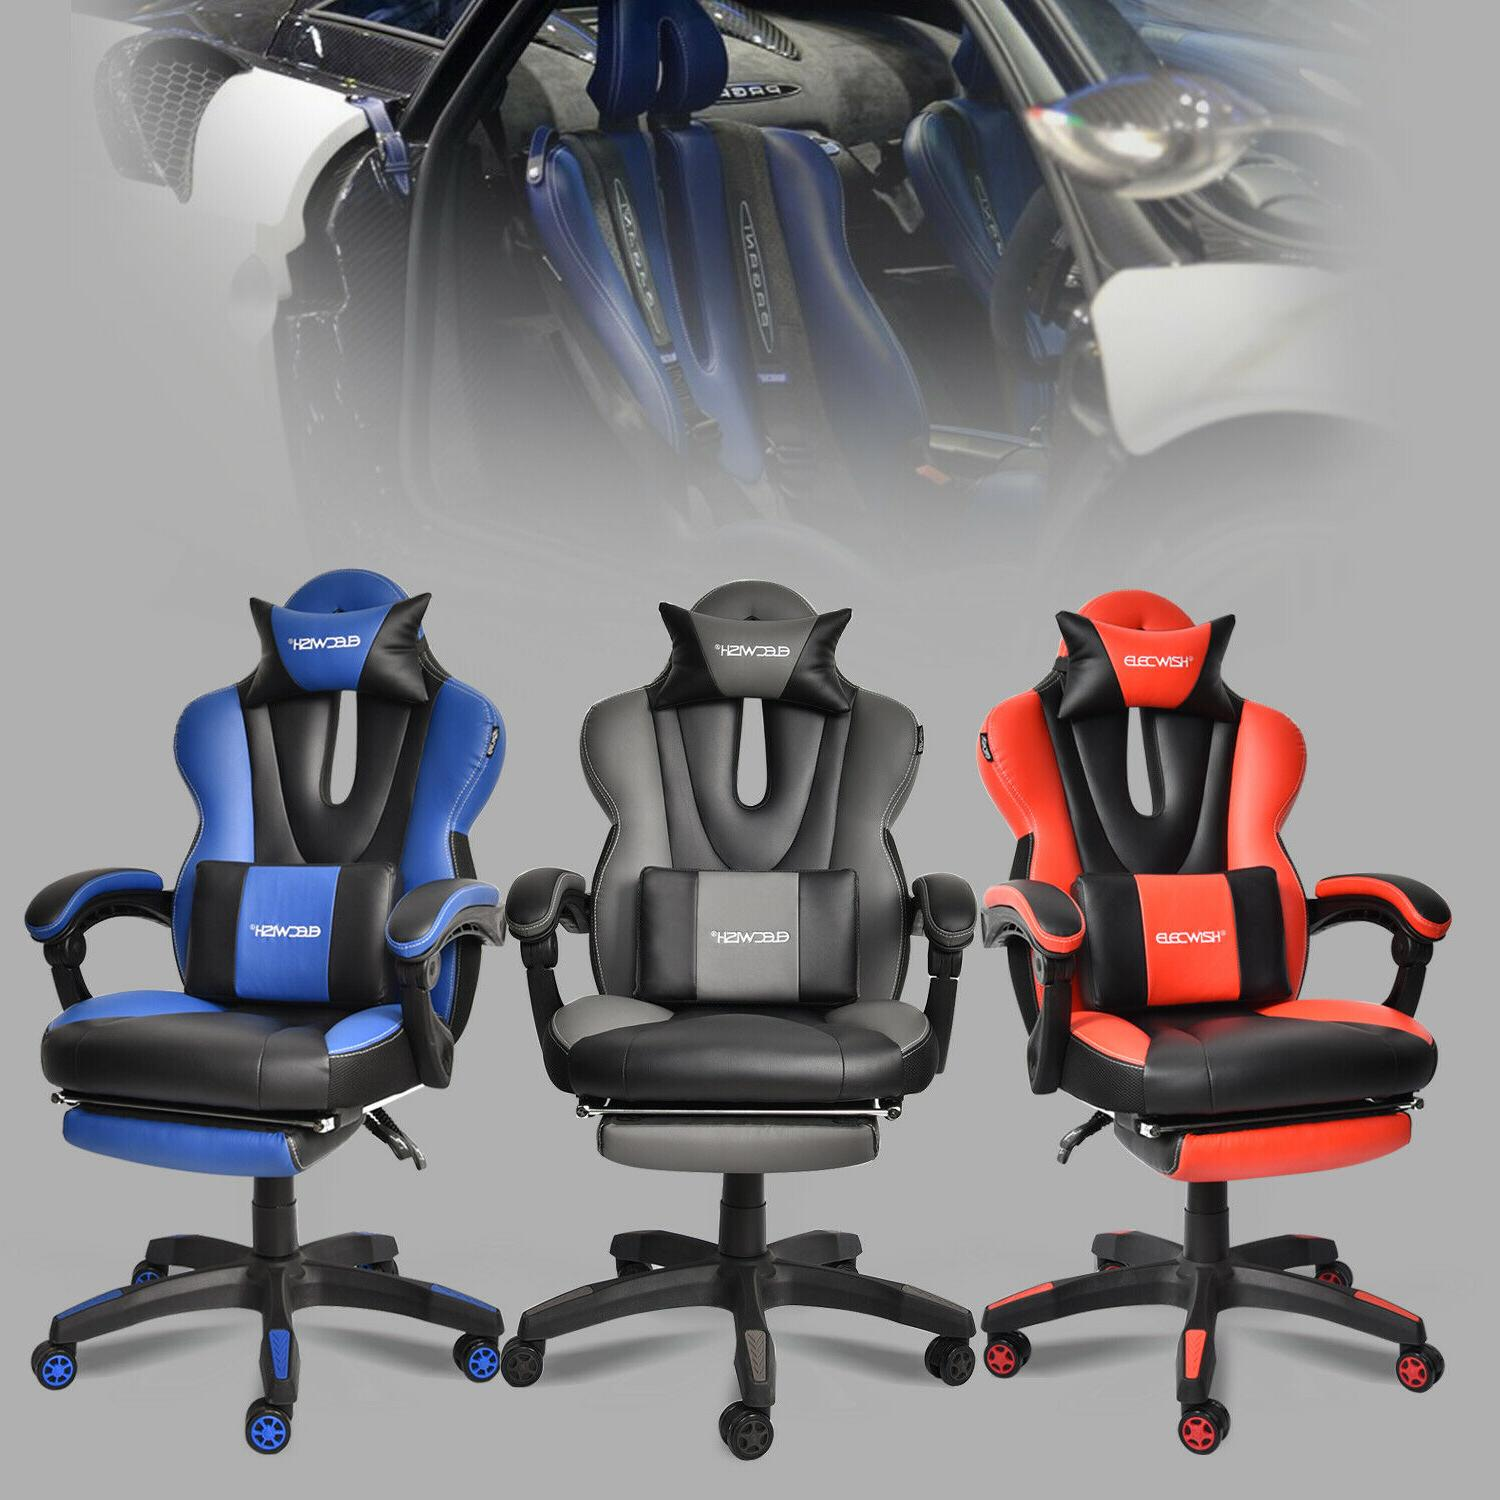 Stupendous Gaming Chair Sports Car Series Computer Racing Ergonomic Office Desk Recliner Bralicious Painted Fabric Chair Ideas Braliciousco